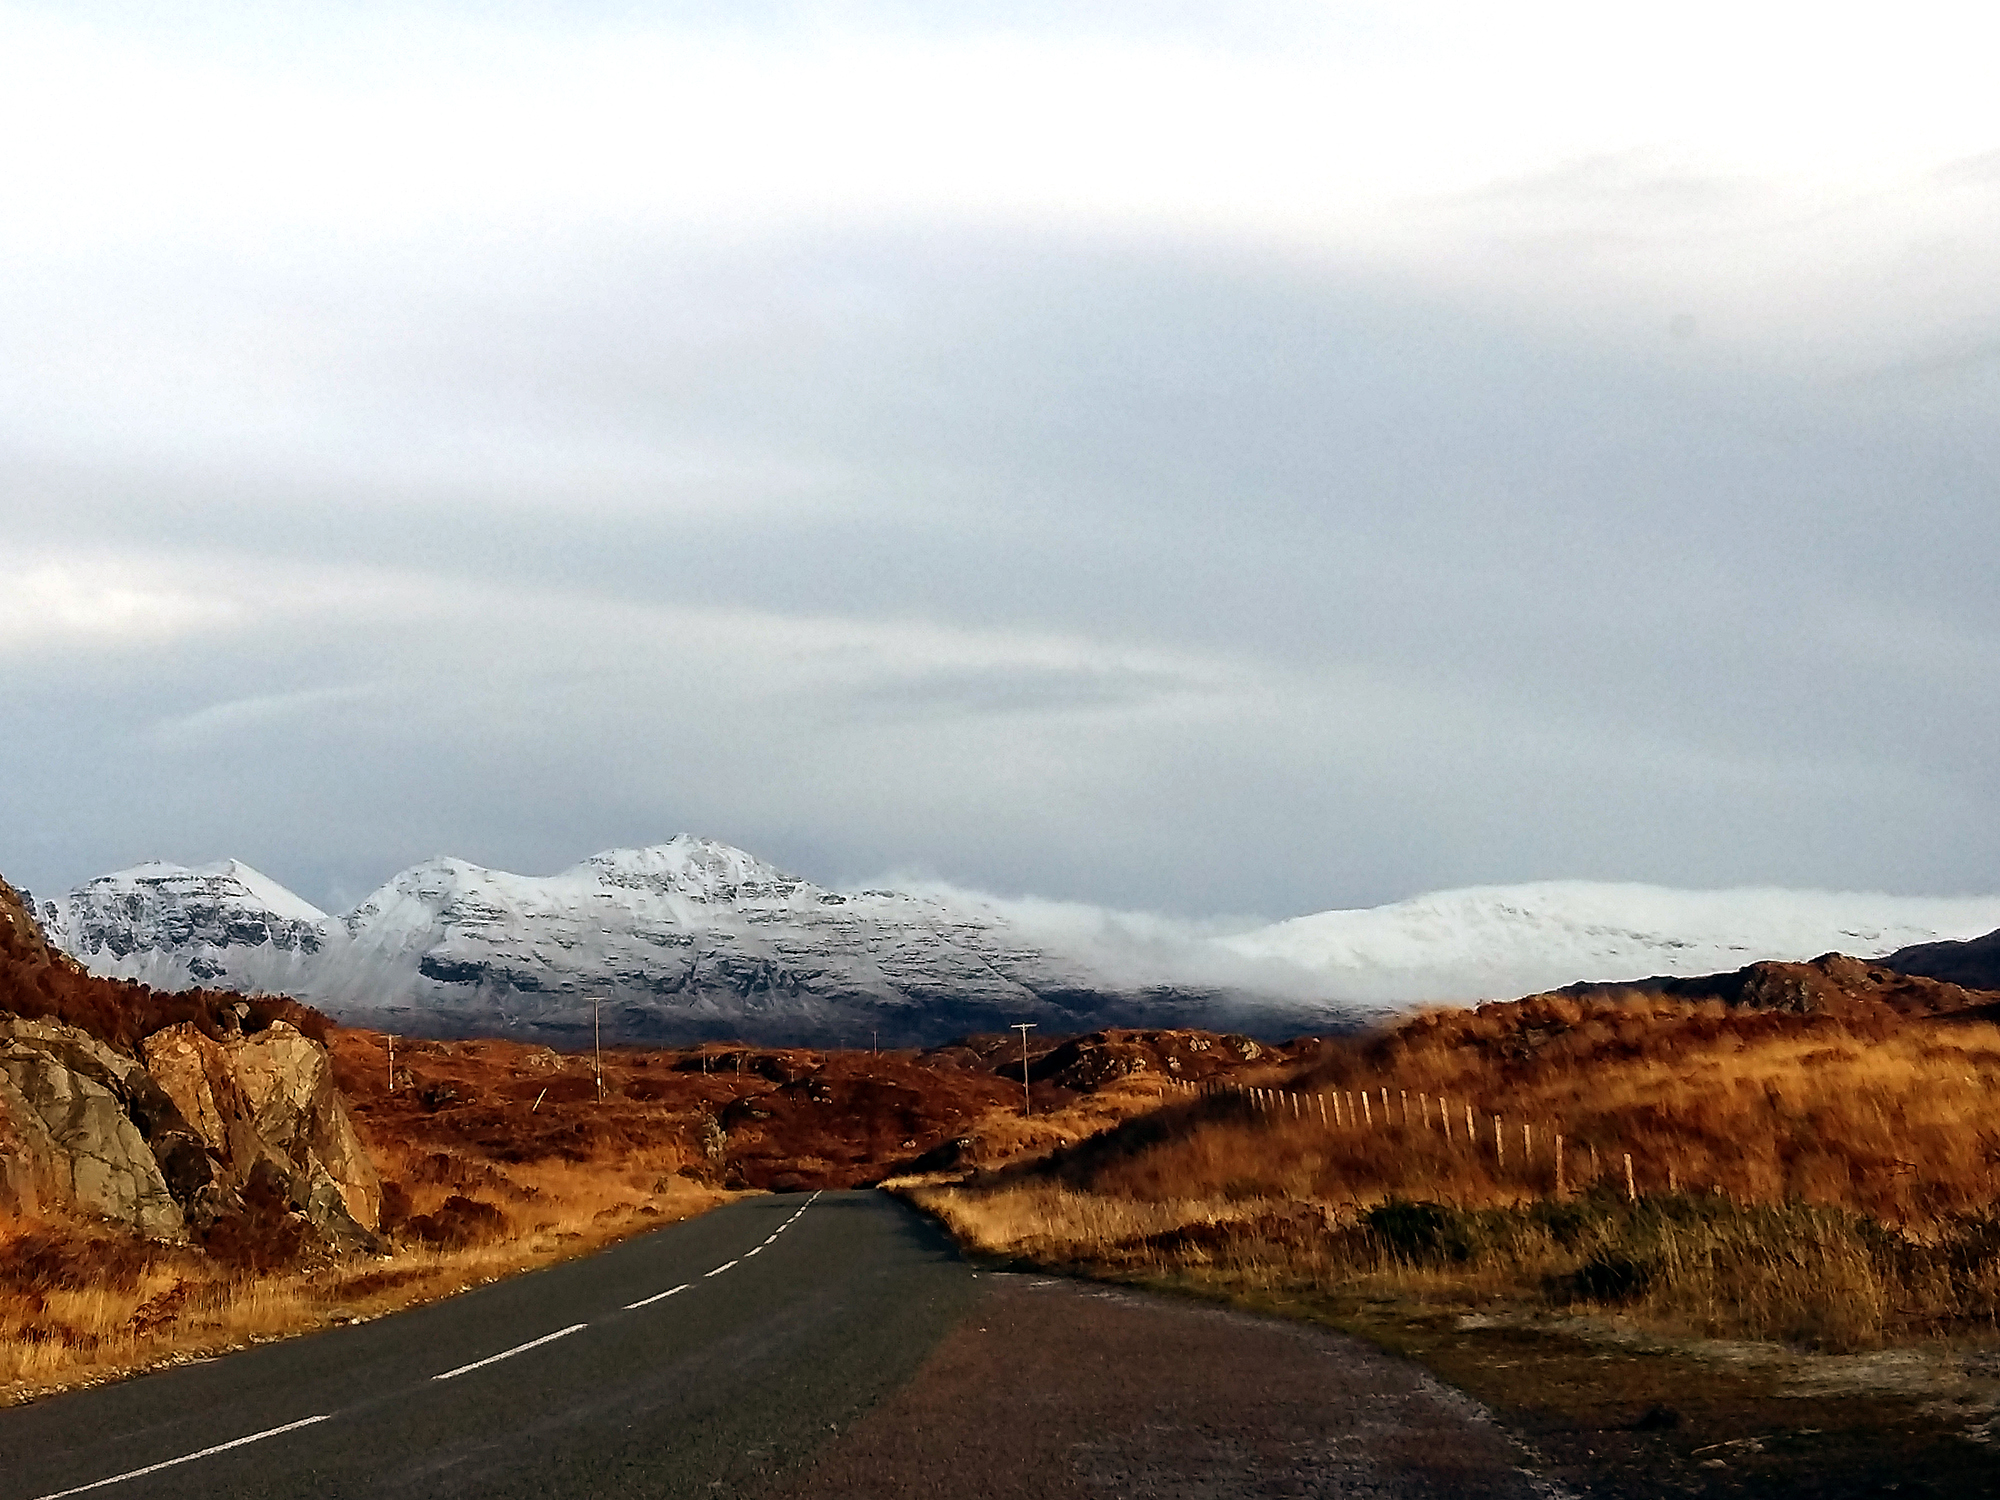 NC500 Roadtour view with snowed mountain